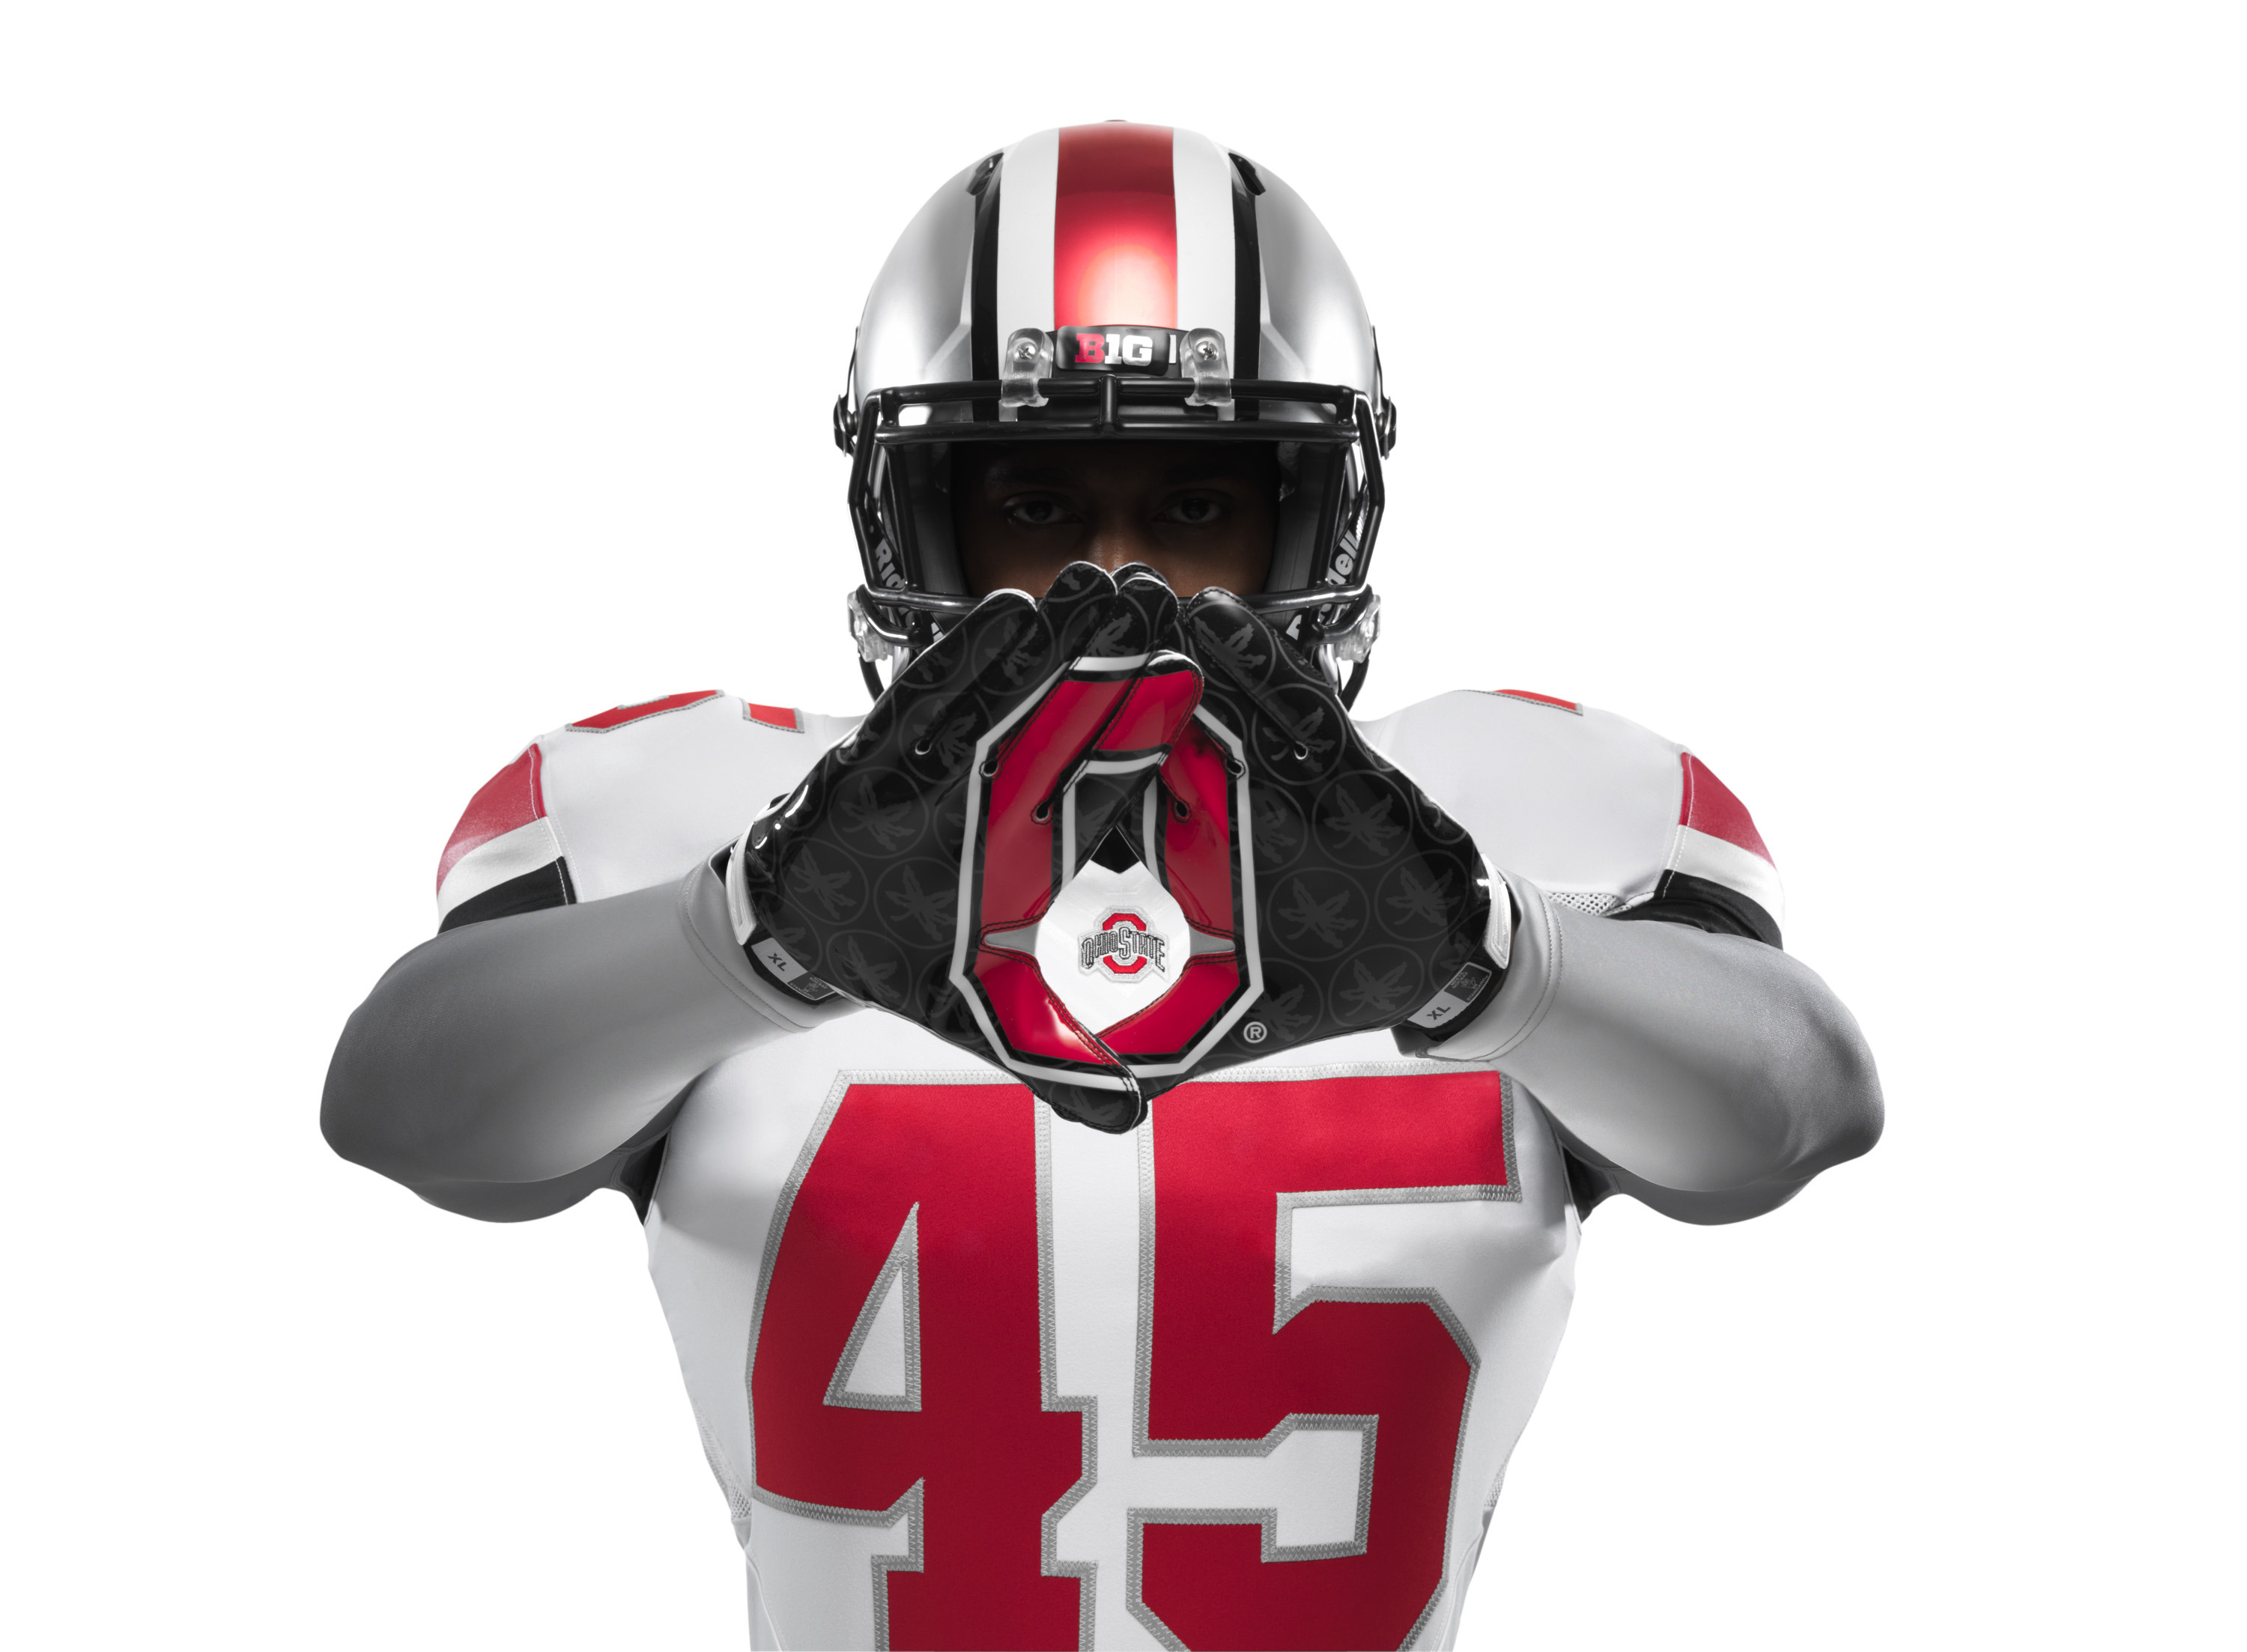 3a3cb05dfb5 Just doing it: Ohio State, Nike extend $46 million, brand-building  agreements | The Lantern